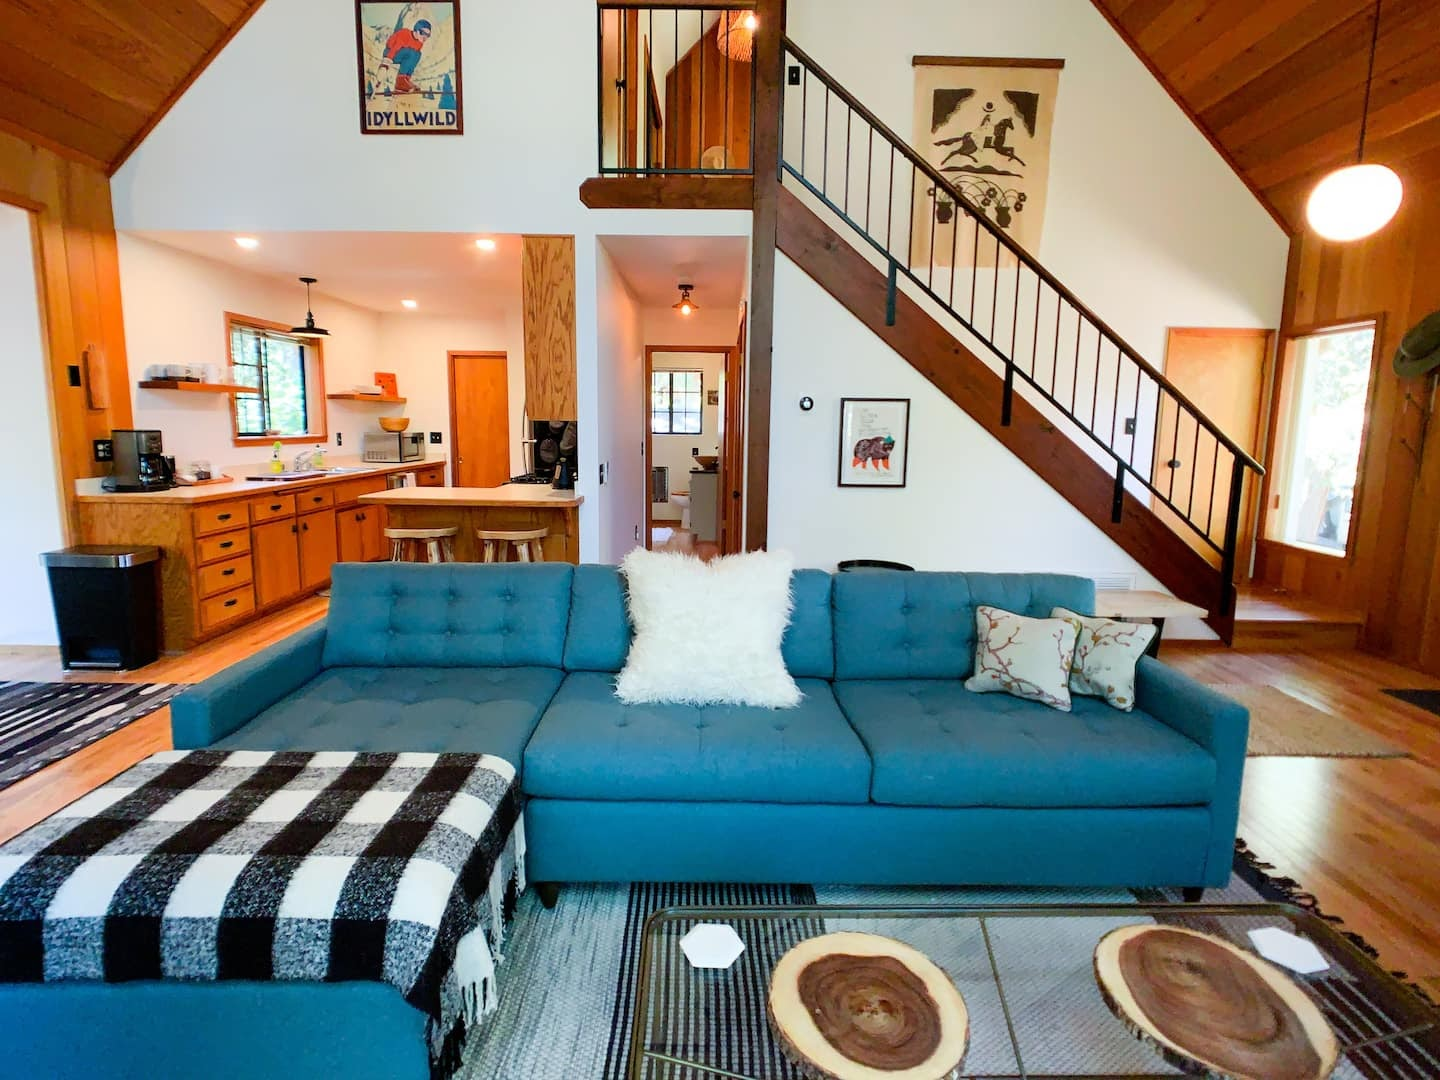 Main living and dining area of Black Pine Cove with a blue couch, high-rise ceilings and wooden furnishings